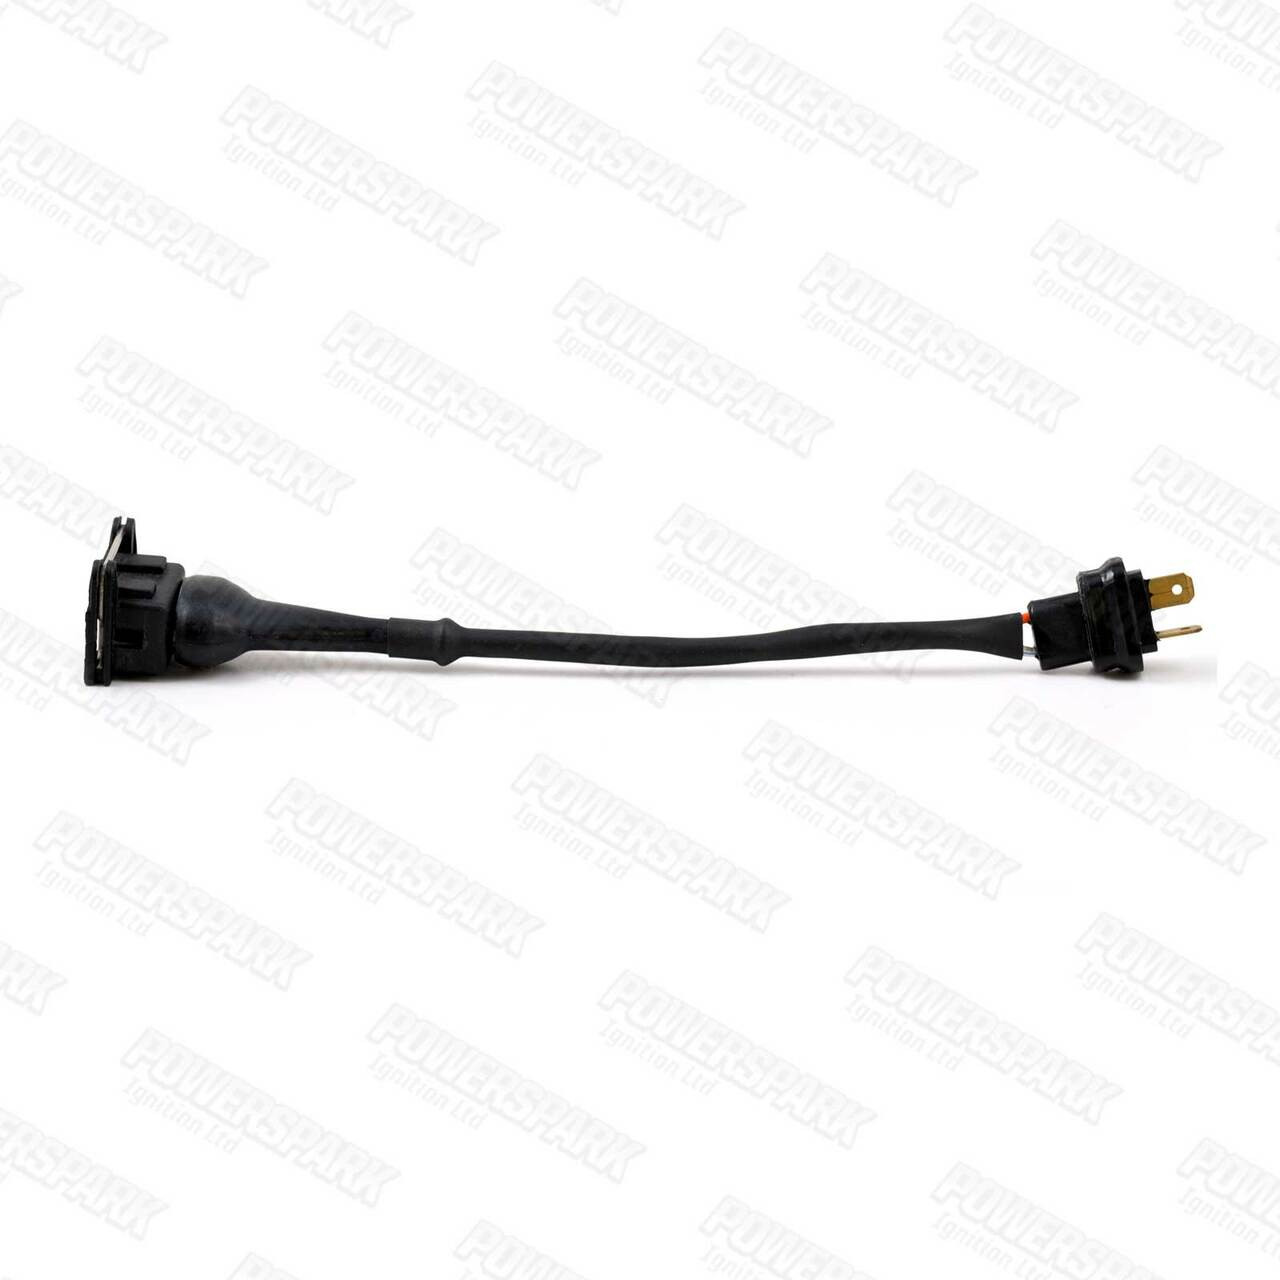 2 to 3 pin Short Linking Lead for V8 Engines fitted with 35D